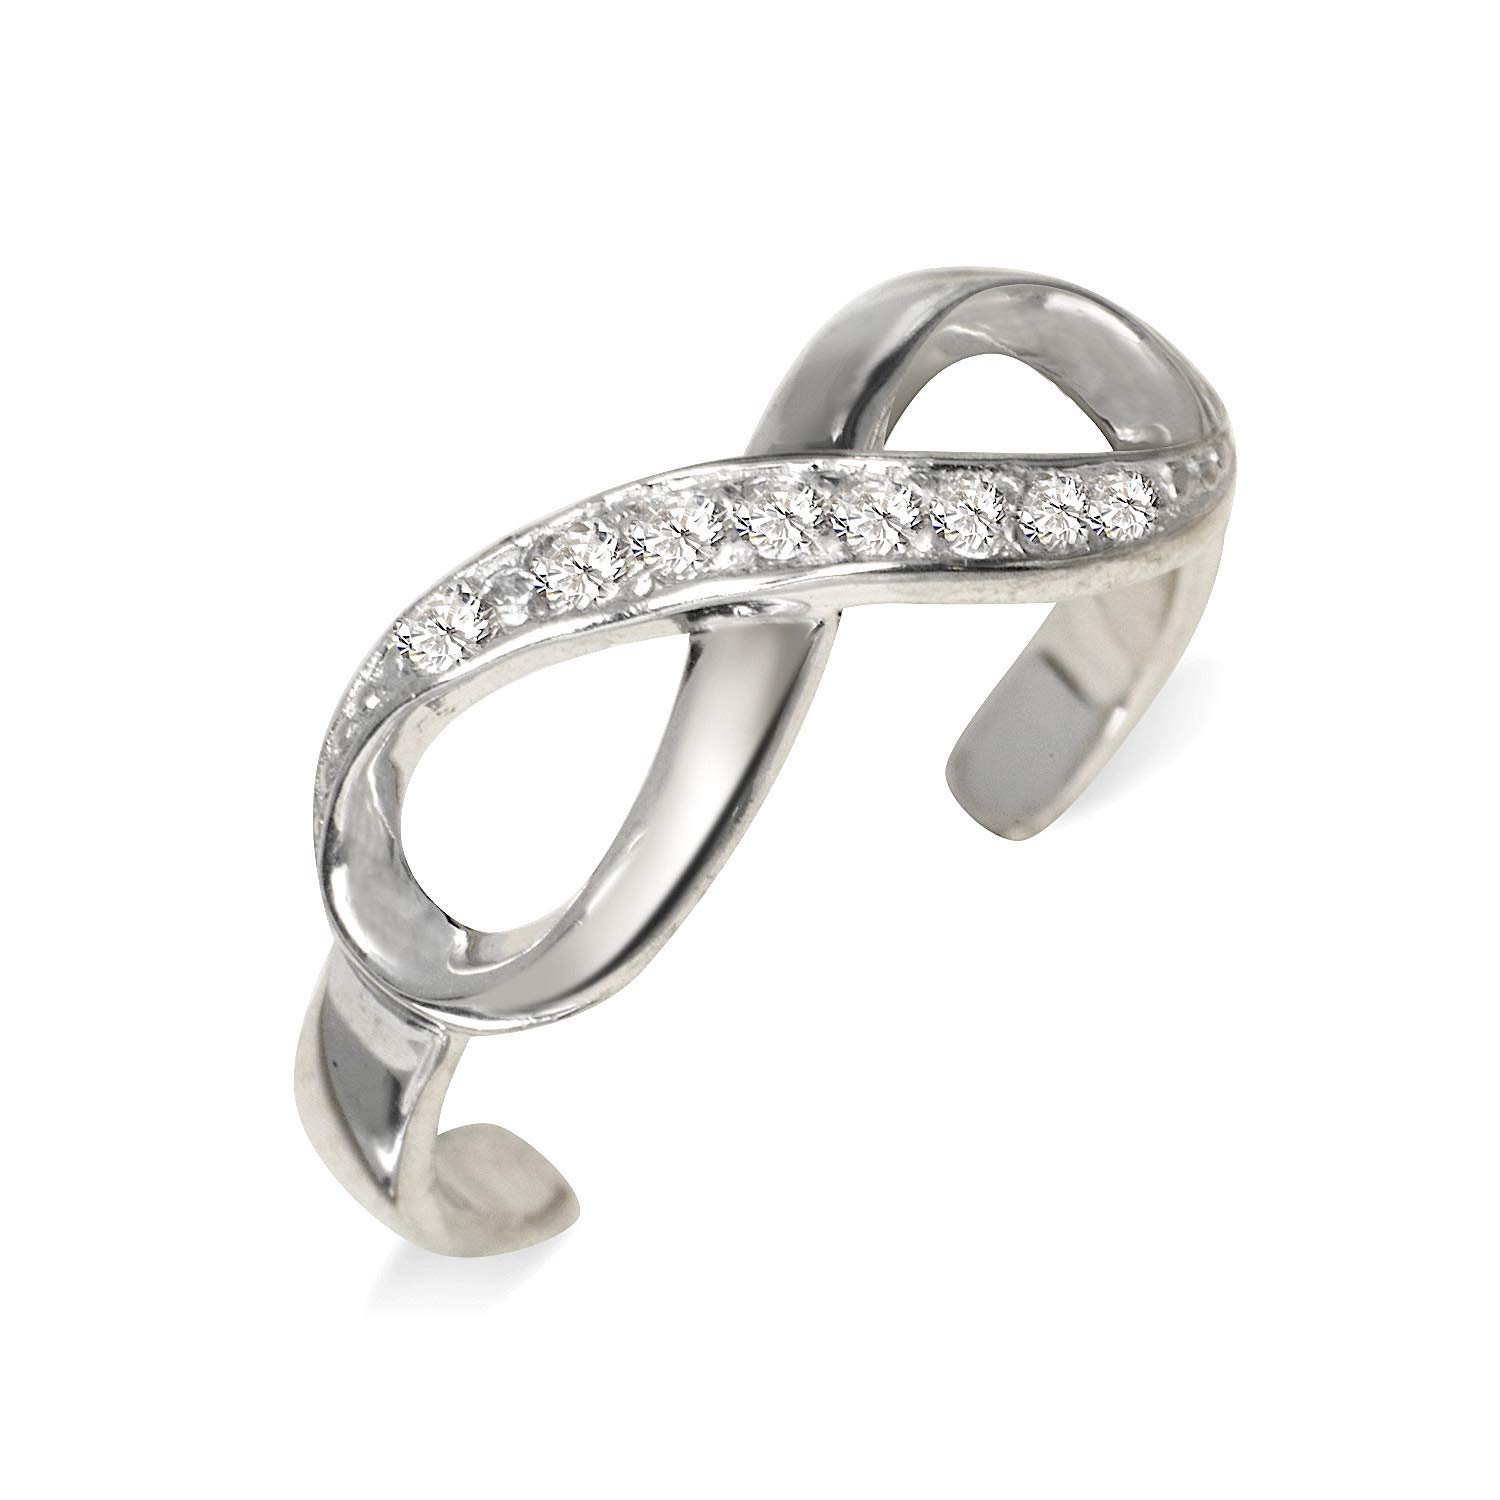 10K Yellow Gold Fancy Design Solid Adjustable Toe Ring